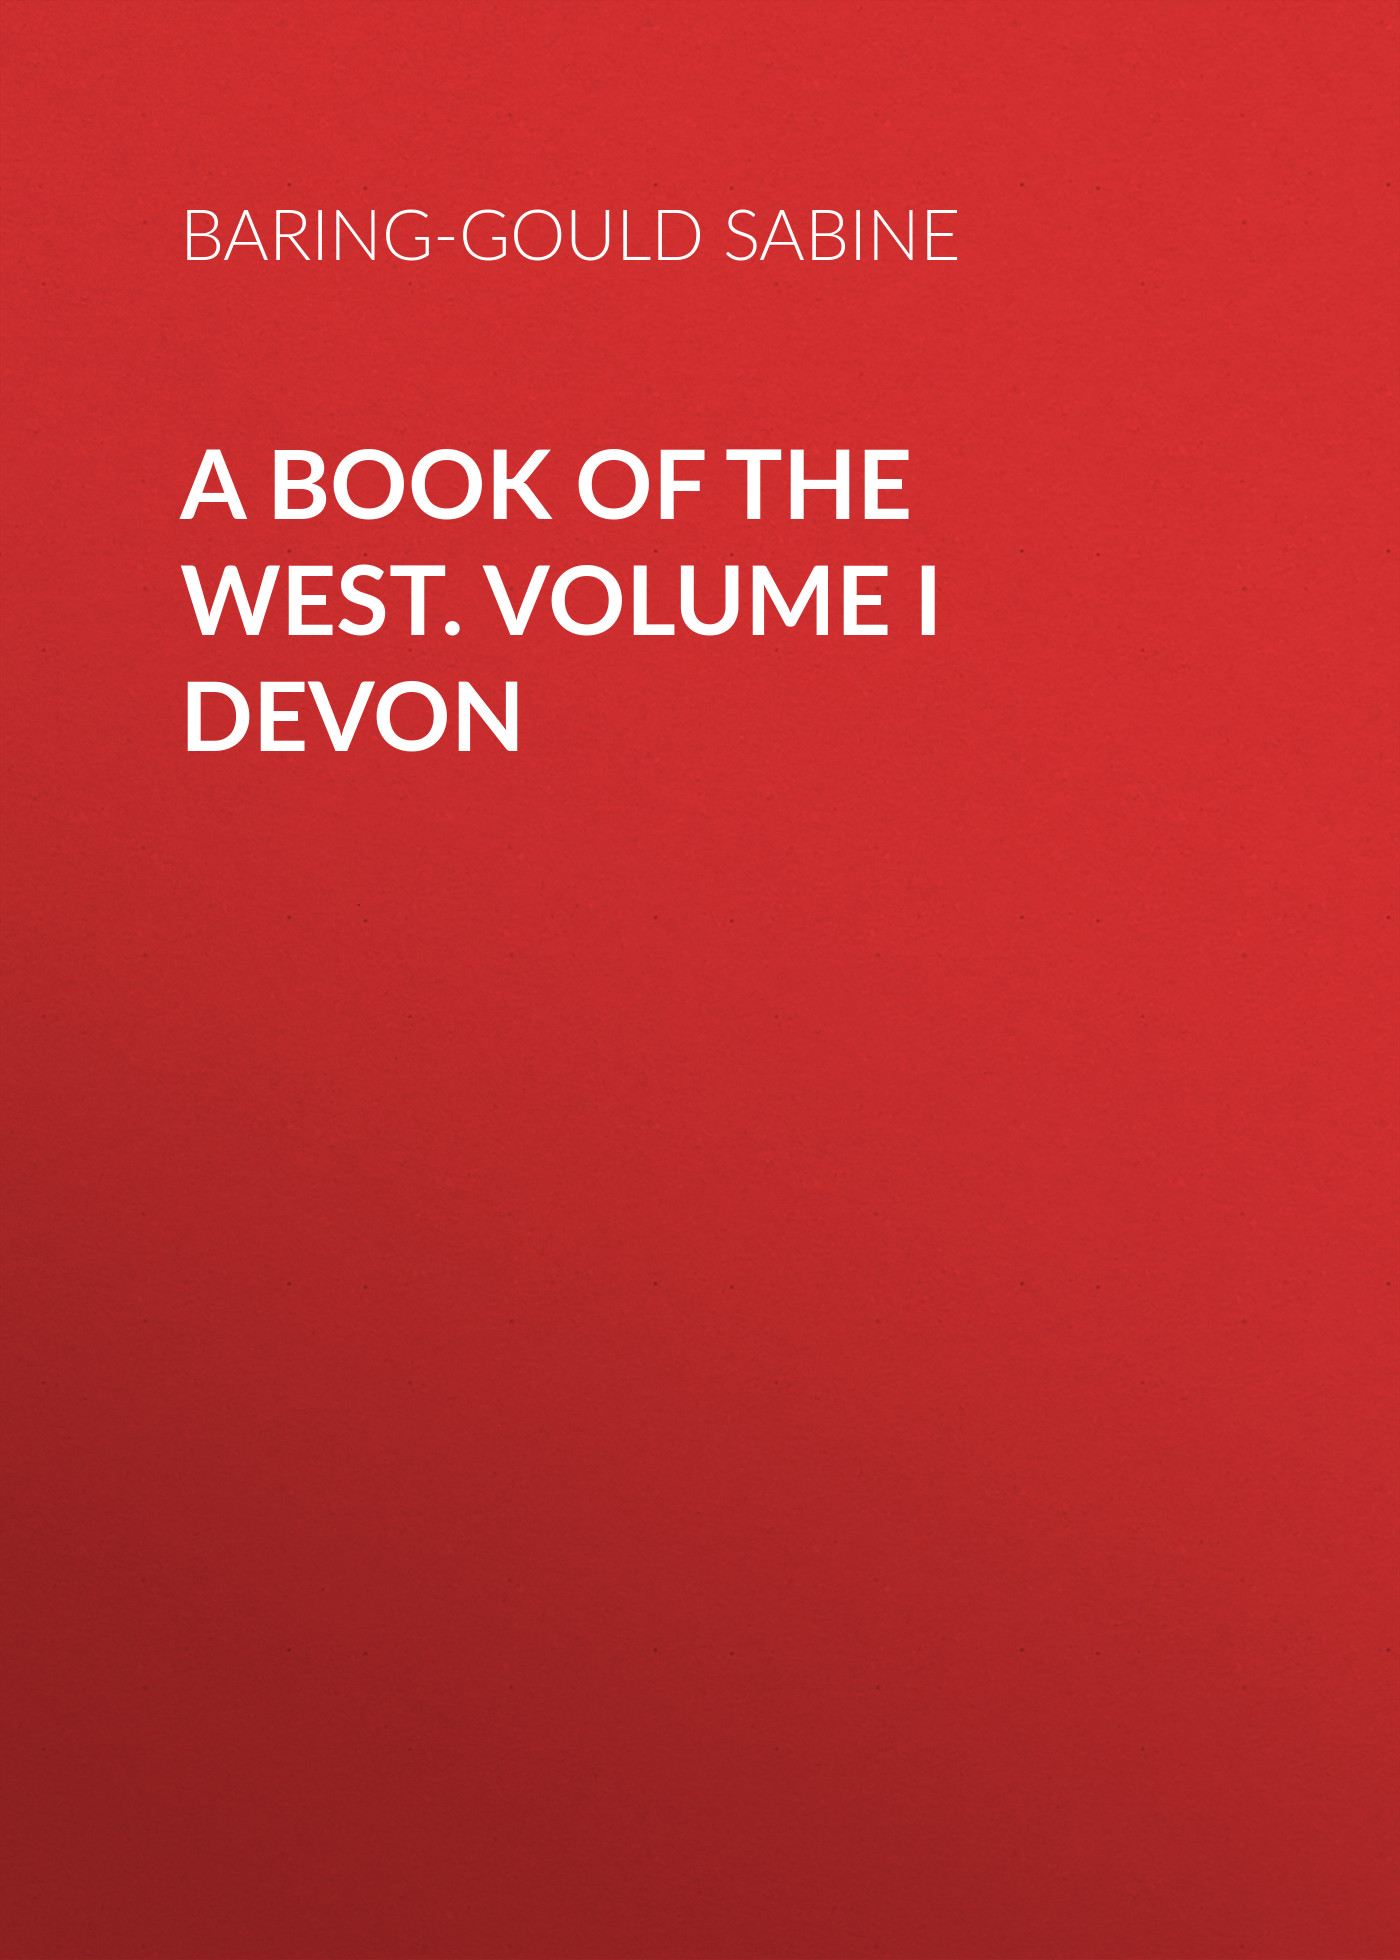 Baring-Gould Sabine A Book of the West. Volume I Devon baring gould sabine a book of ghosts